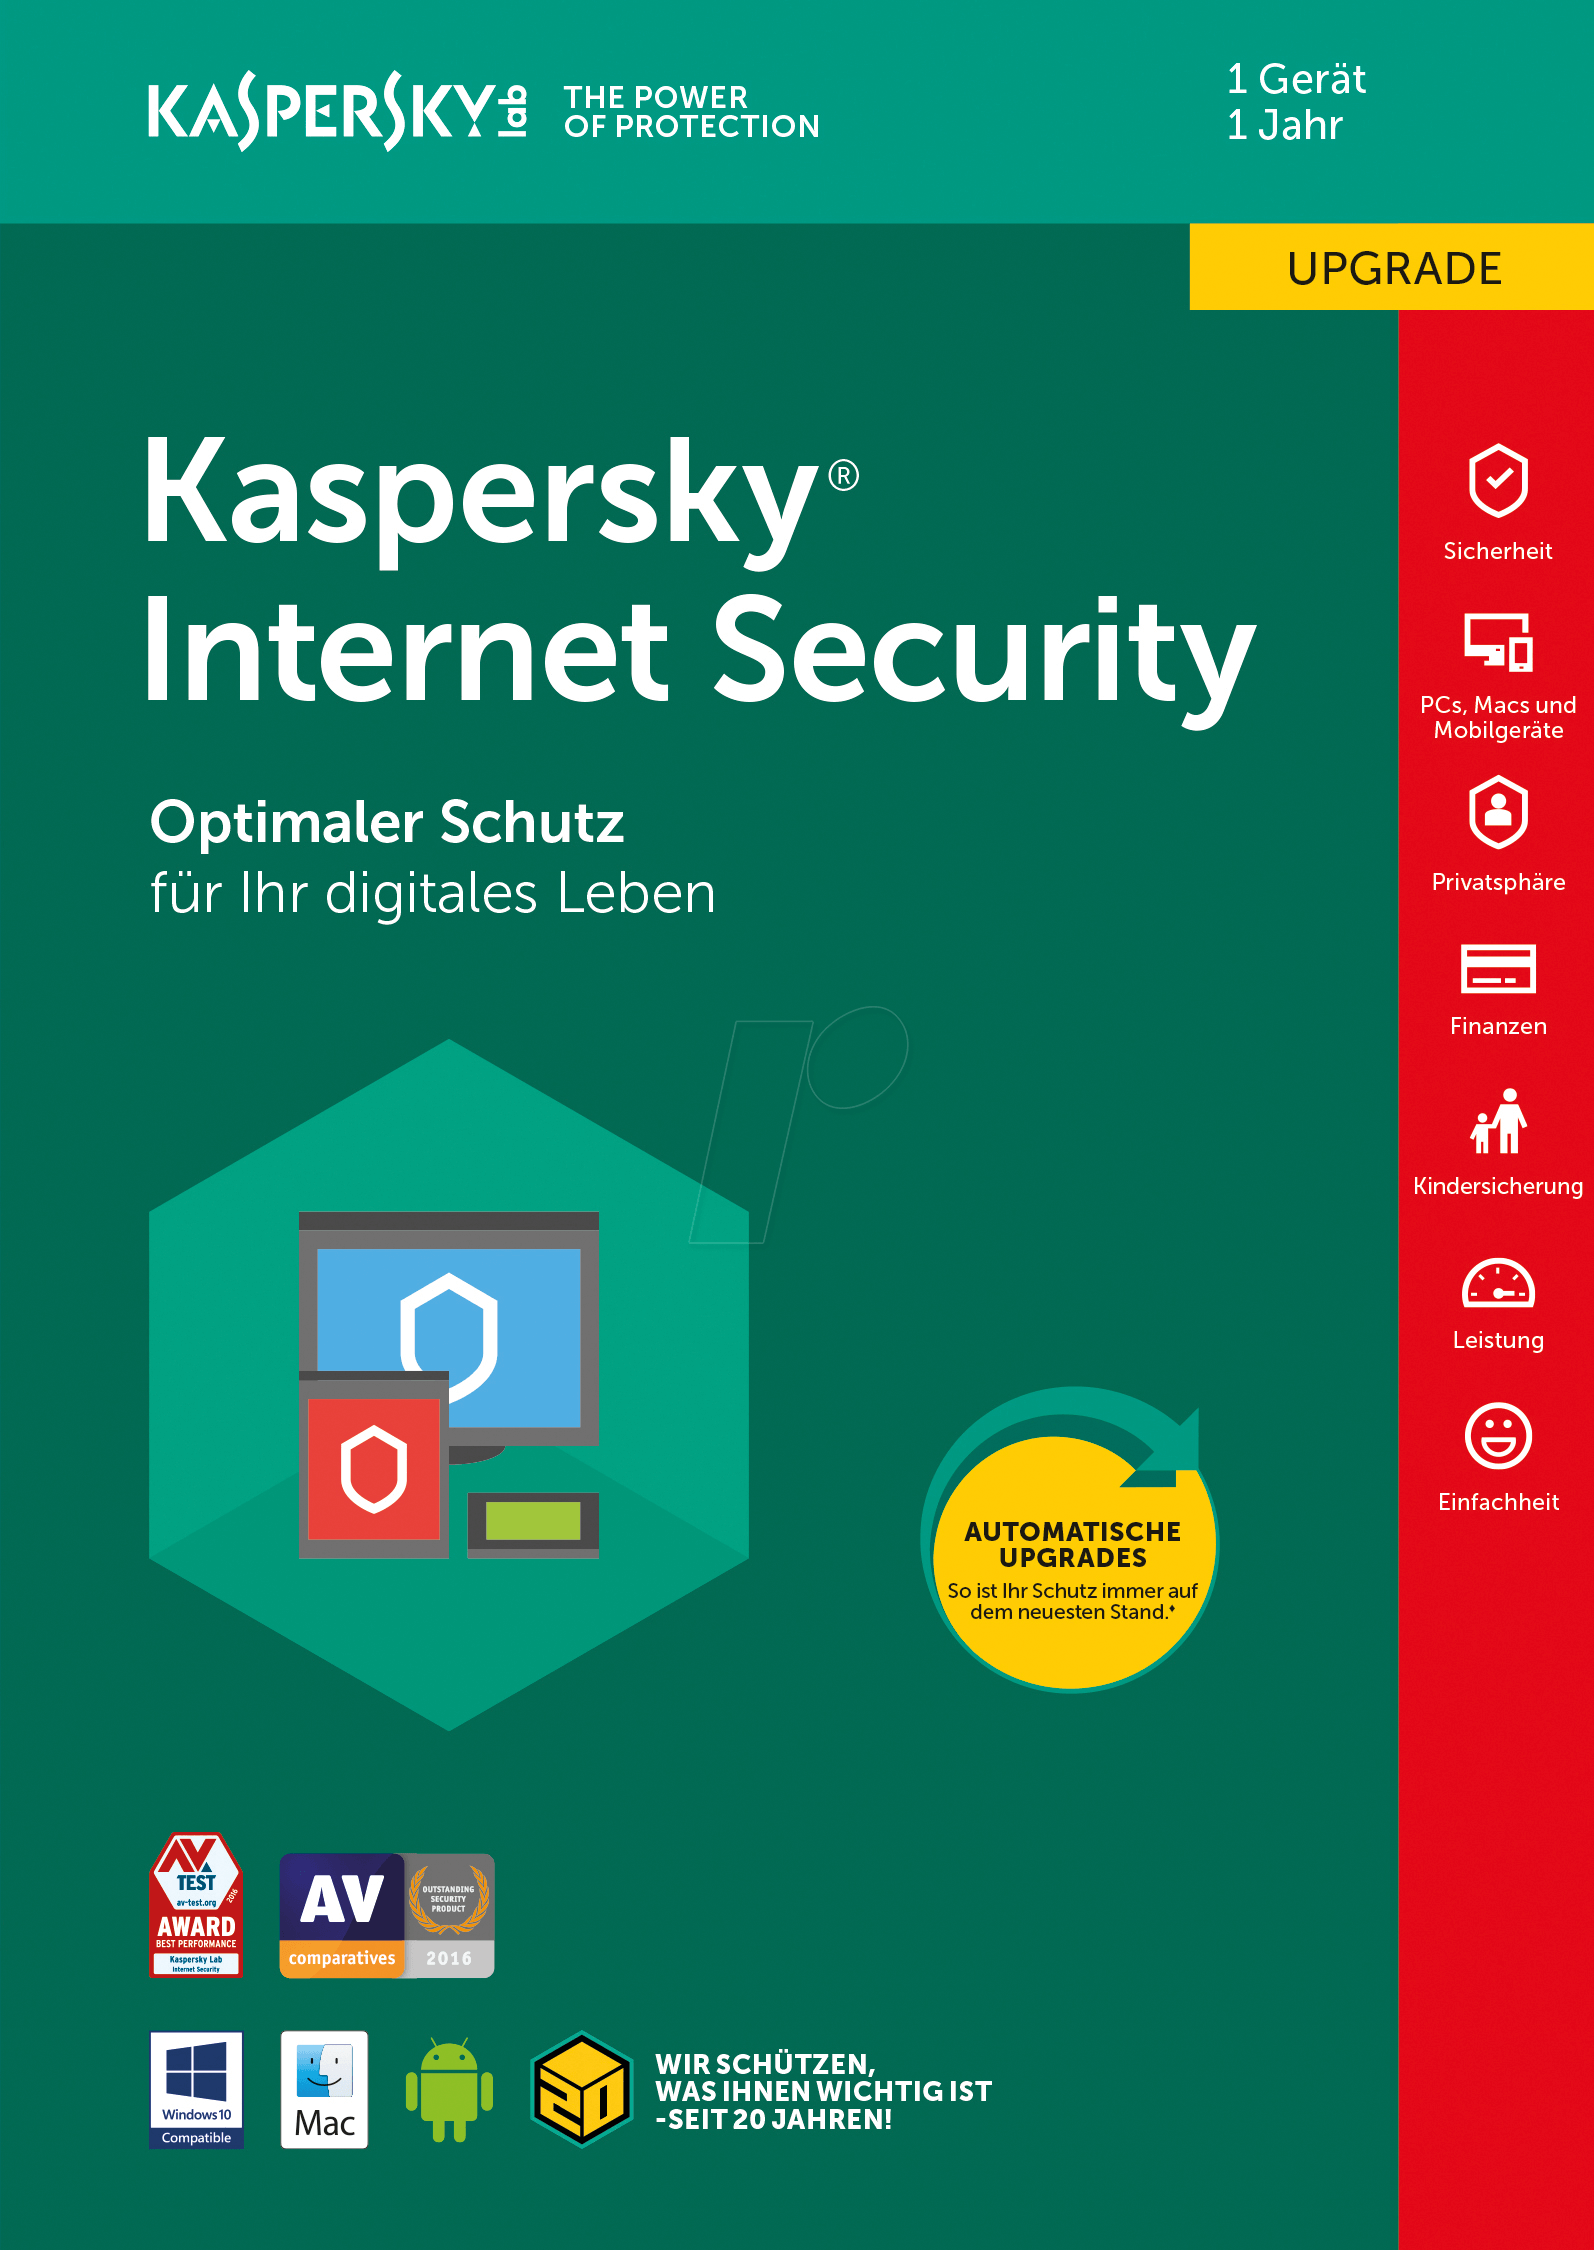 https://cdn-reichelt.de/bilder/web/xxl_ws/G500/KASPERSKY_IS2018_UP_01.png